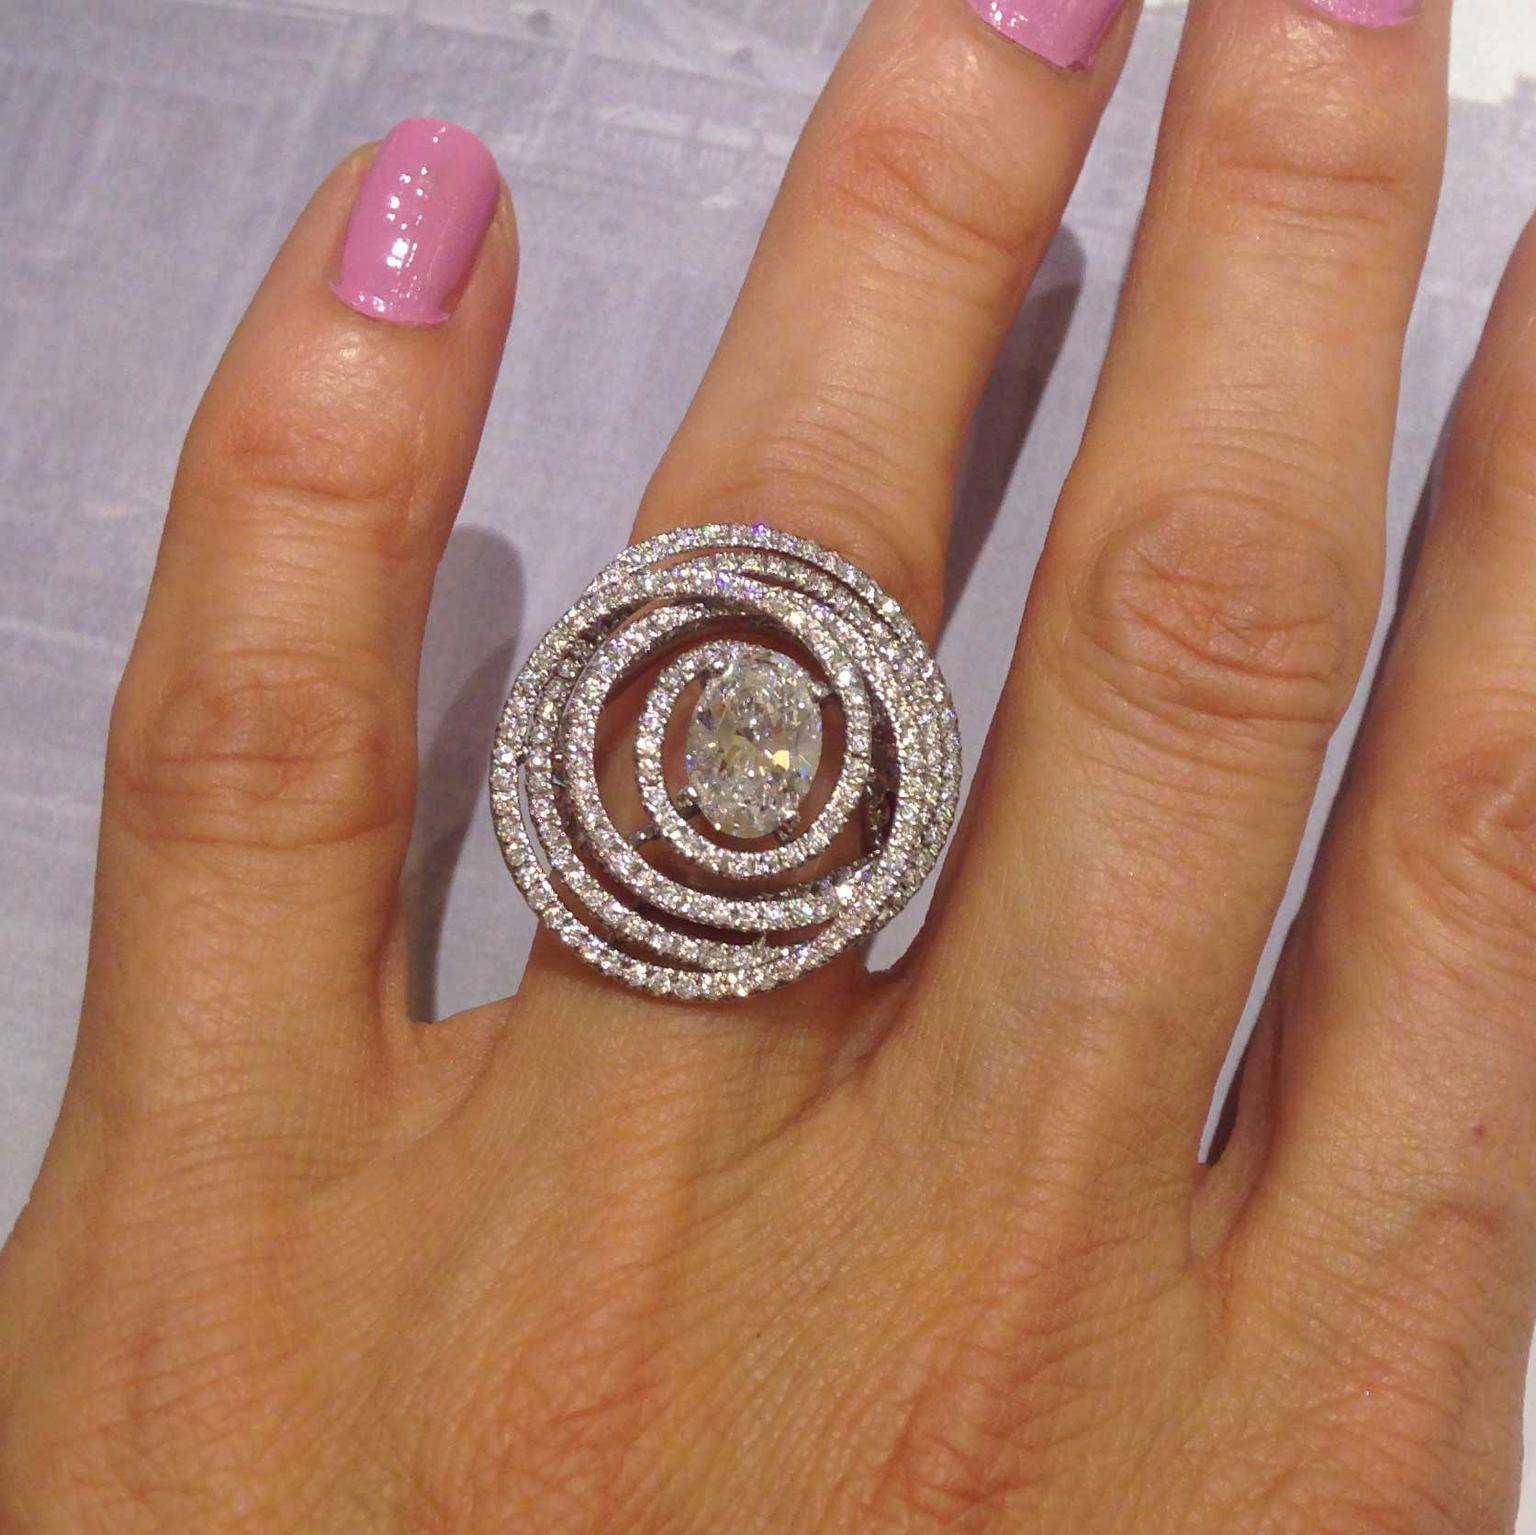 Chanel oval cut diamond ring